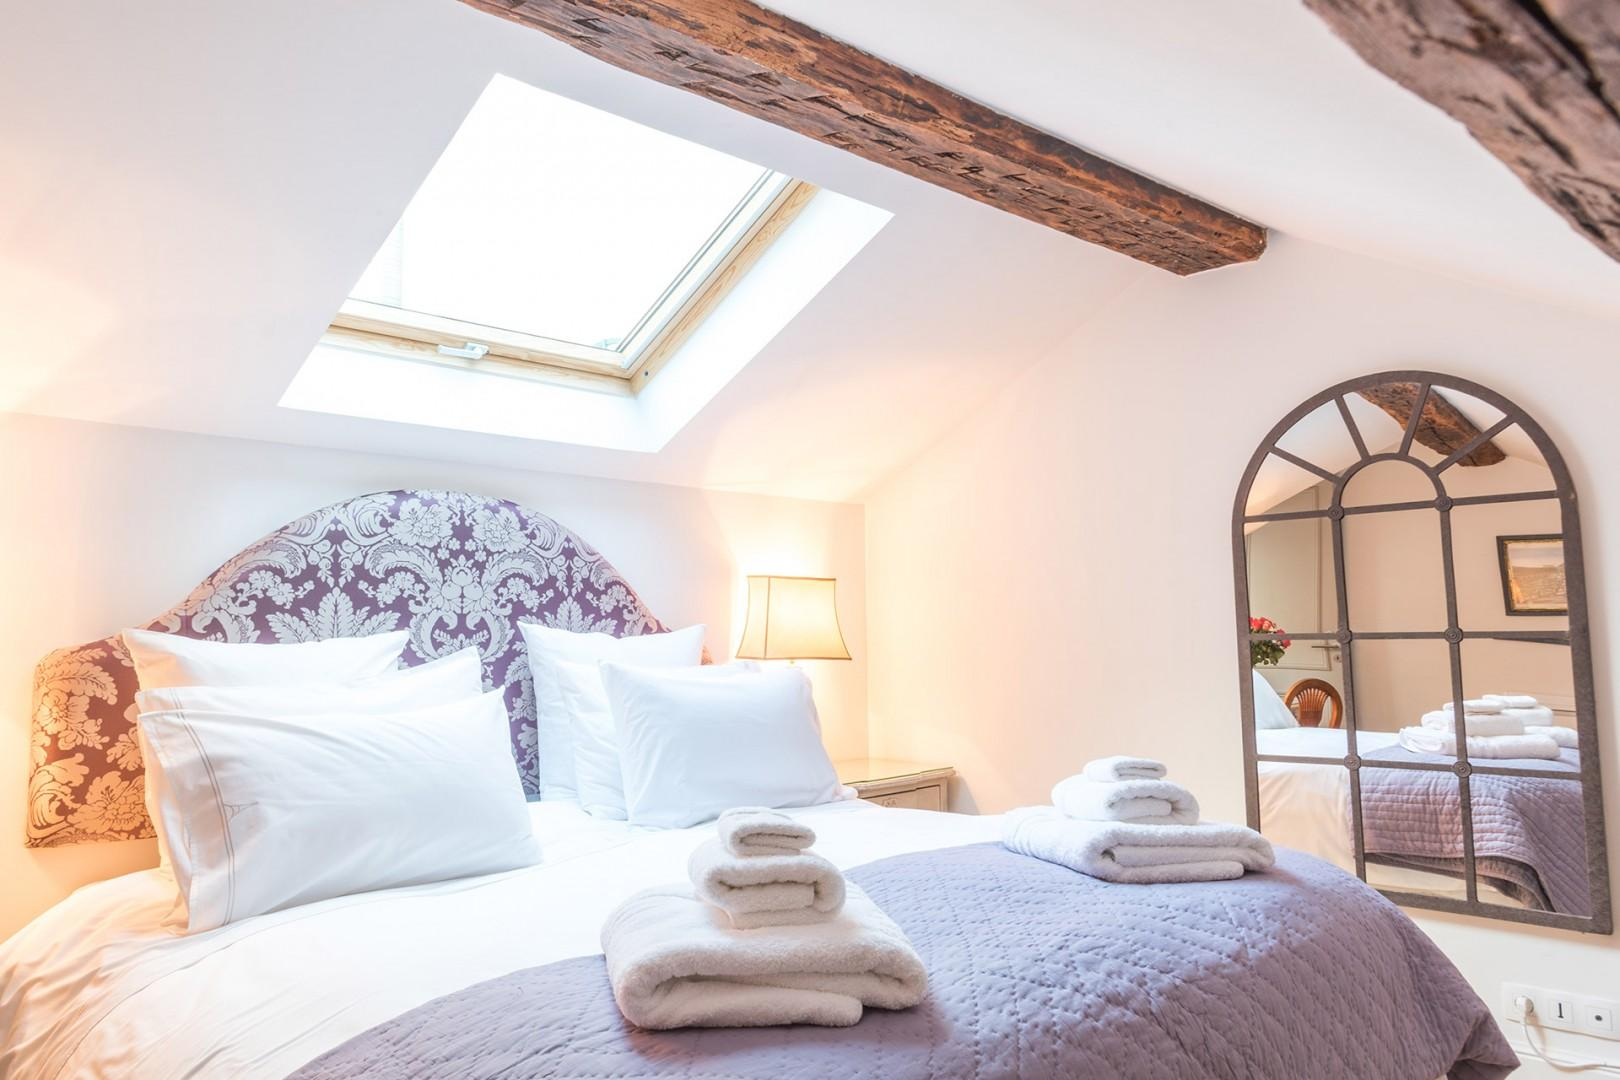 The skylight in the bedroom lets in lots of natural light.